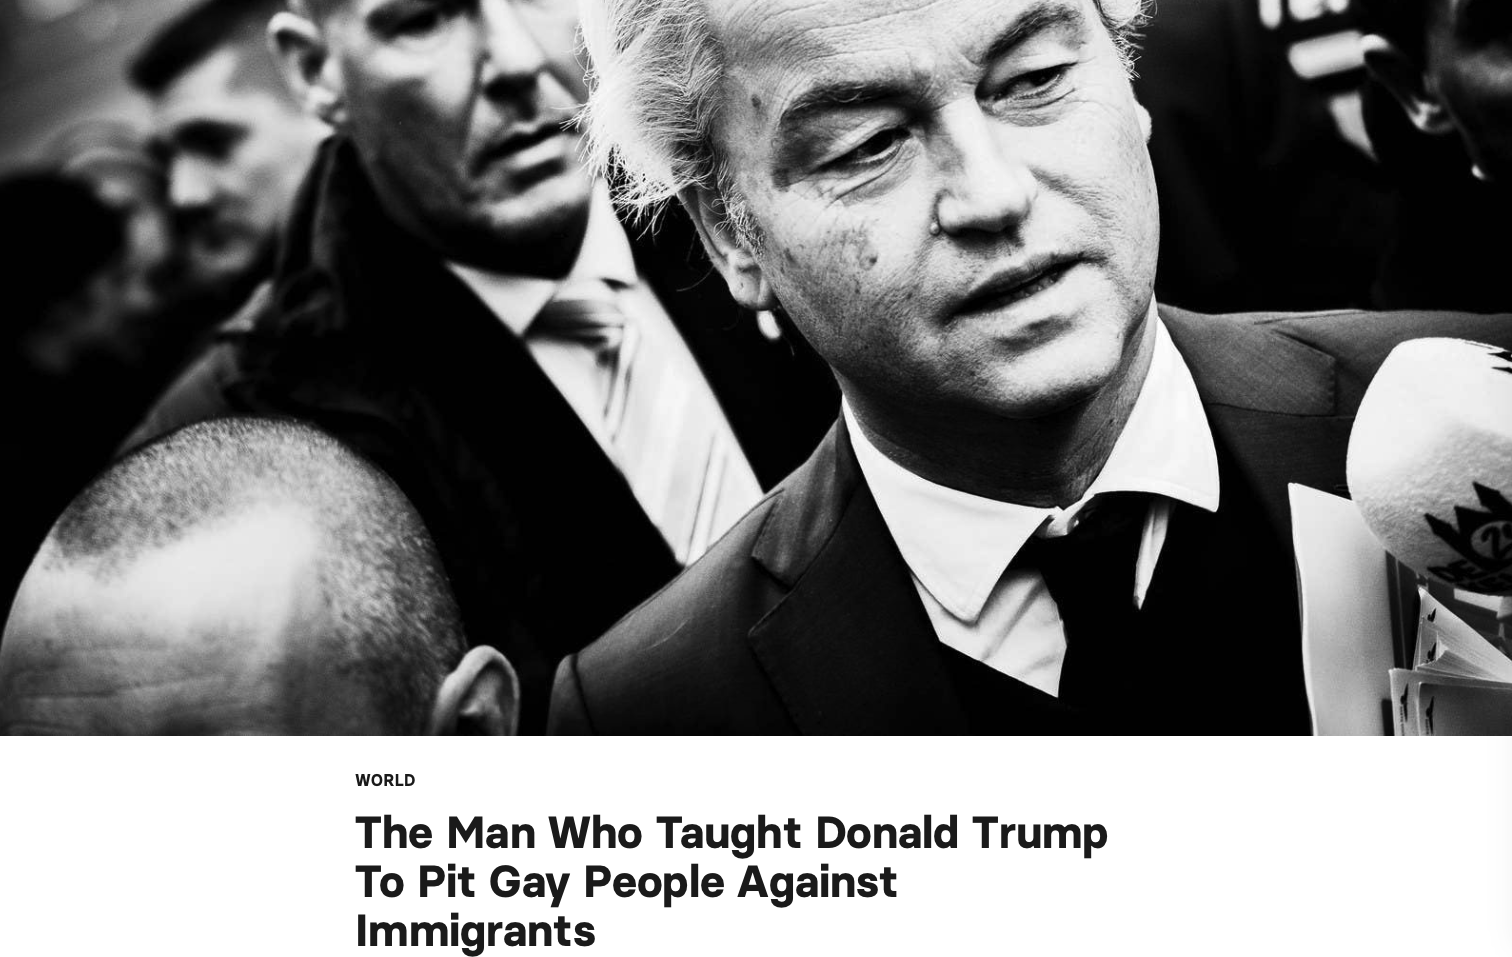 ​ https://www.buzzfeednews.com/article/lesterfeder/geert-wilders-the-netherlands ​​​